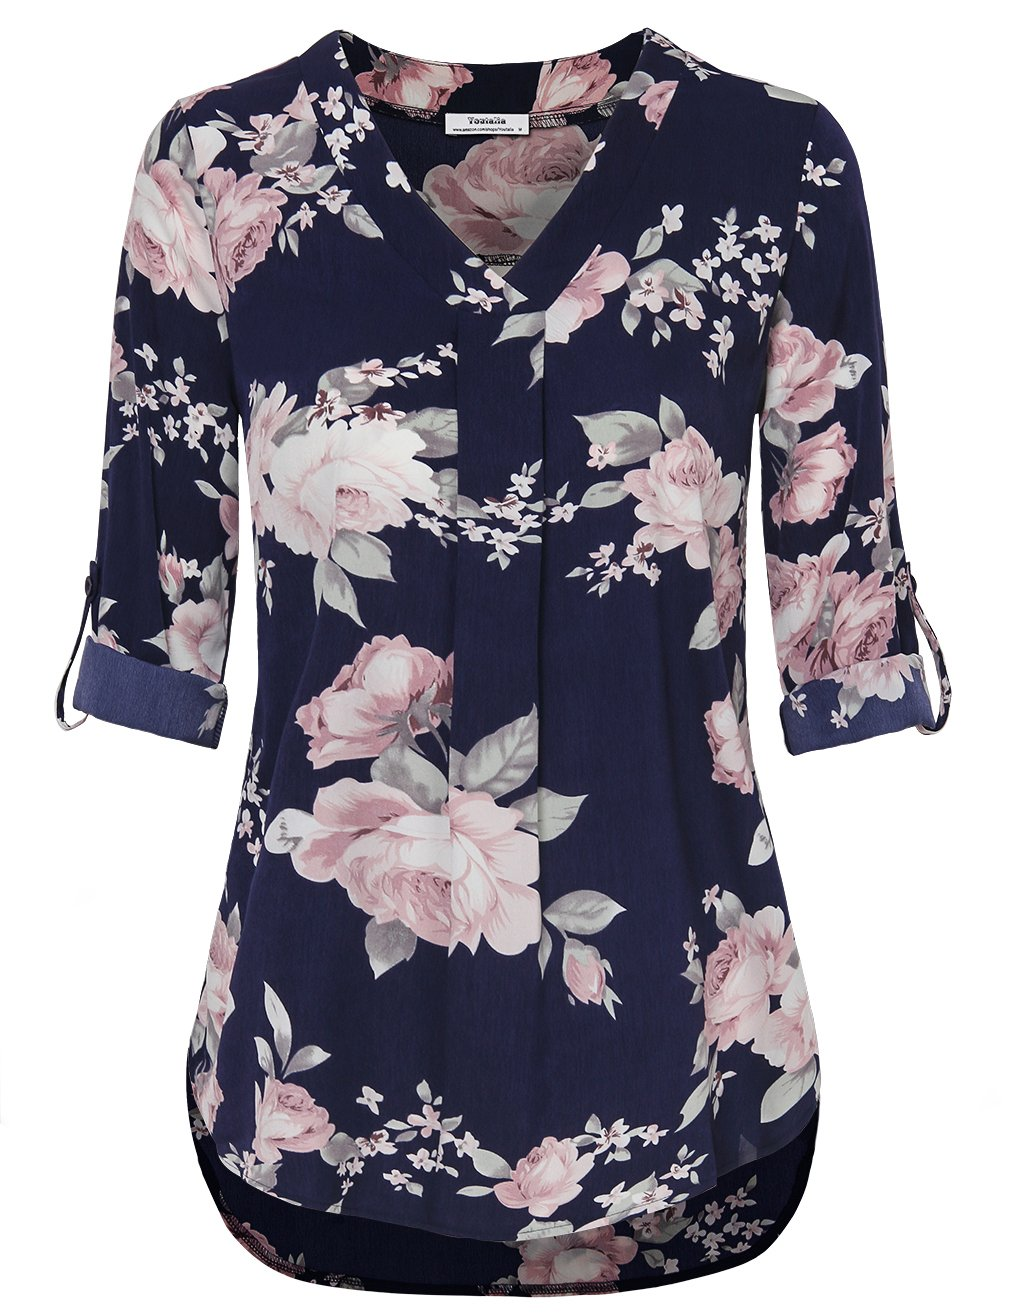 Youtalia Floral Tops for Women, Ladies Summer Casual 3/4 Cuffed Sleeve Office Blouse V Neck Pleated Chiffon Tunic Shirt Multicolor Blue Large